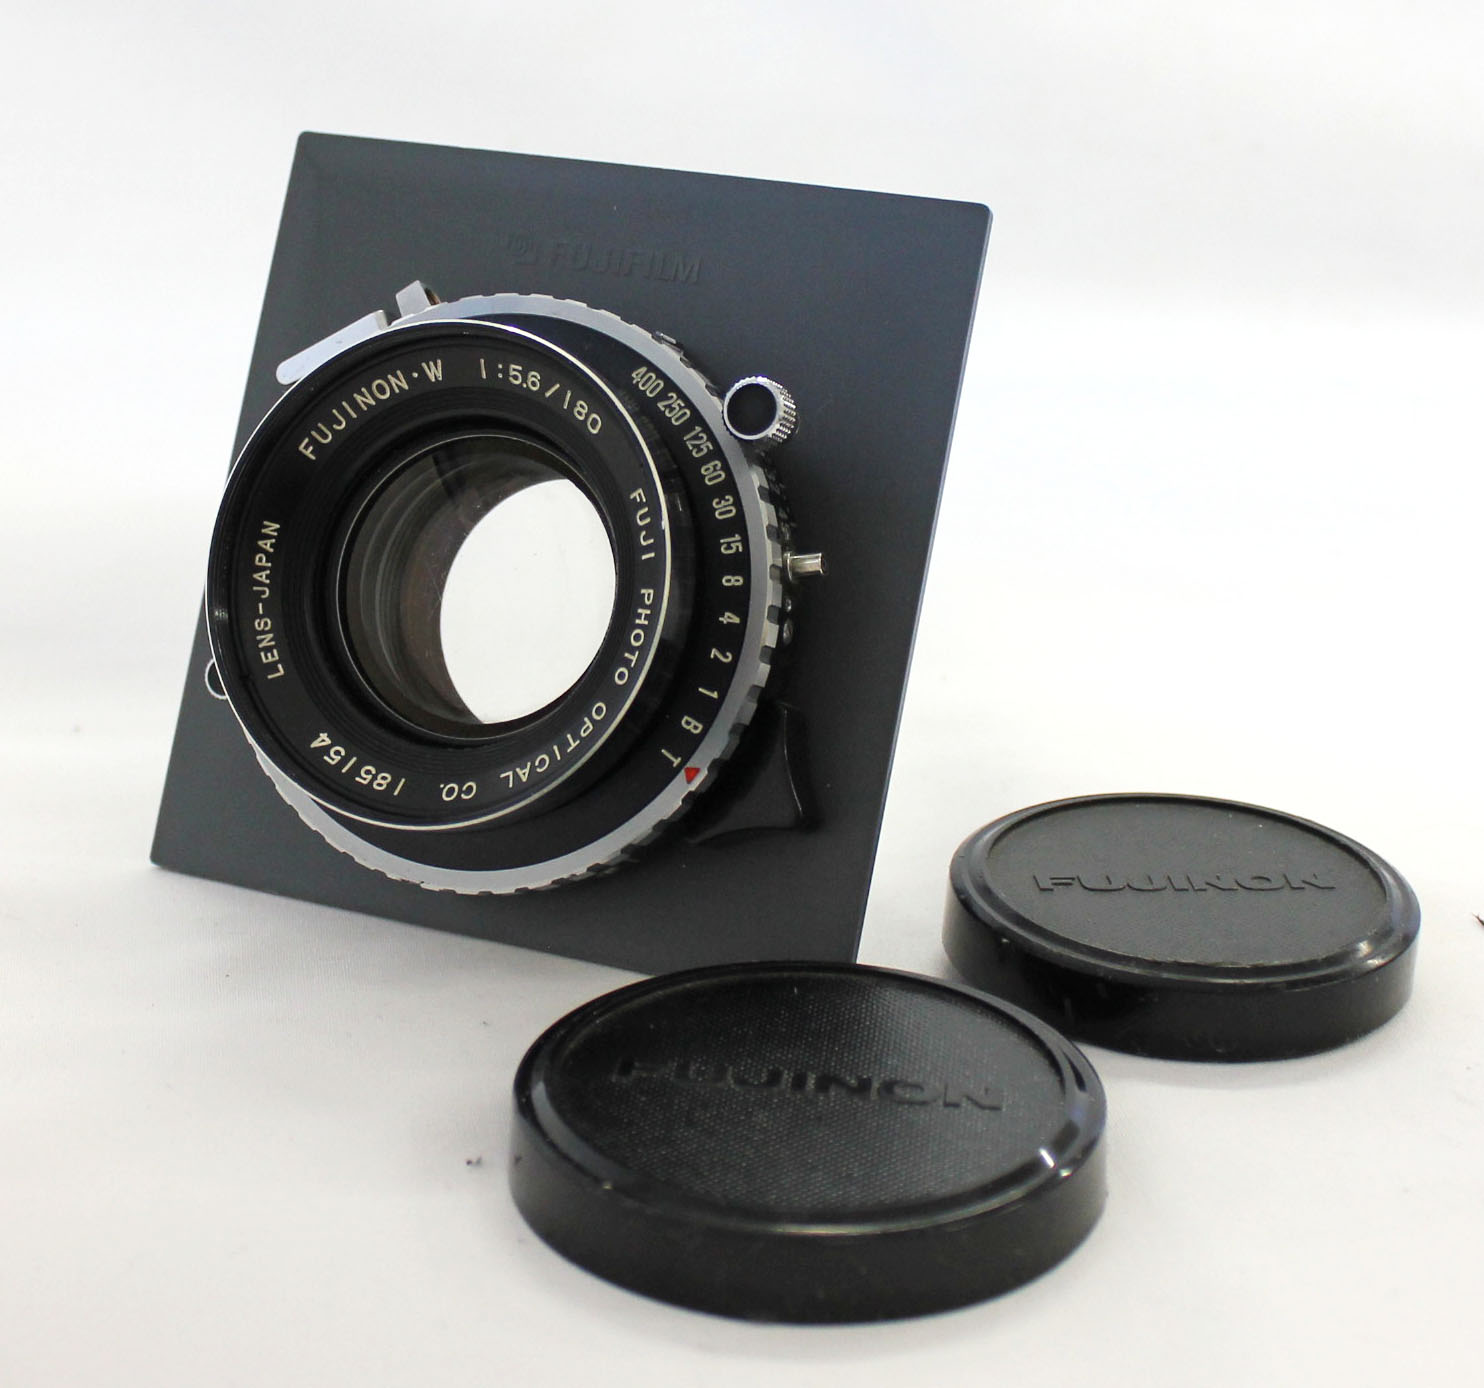 Japan Used Camera Shop | [Excellent++++] Fuji Fujinon W 180mm F/5.6 4x5 Large Format Lens with Copal Shutter from Japan